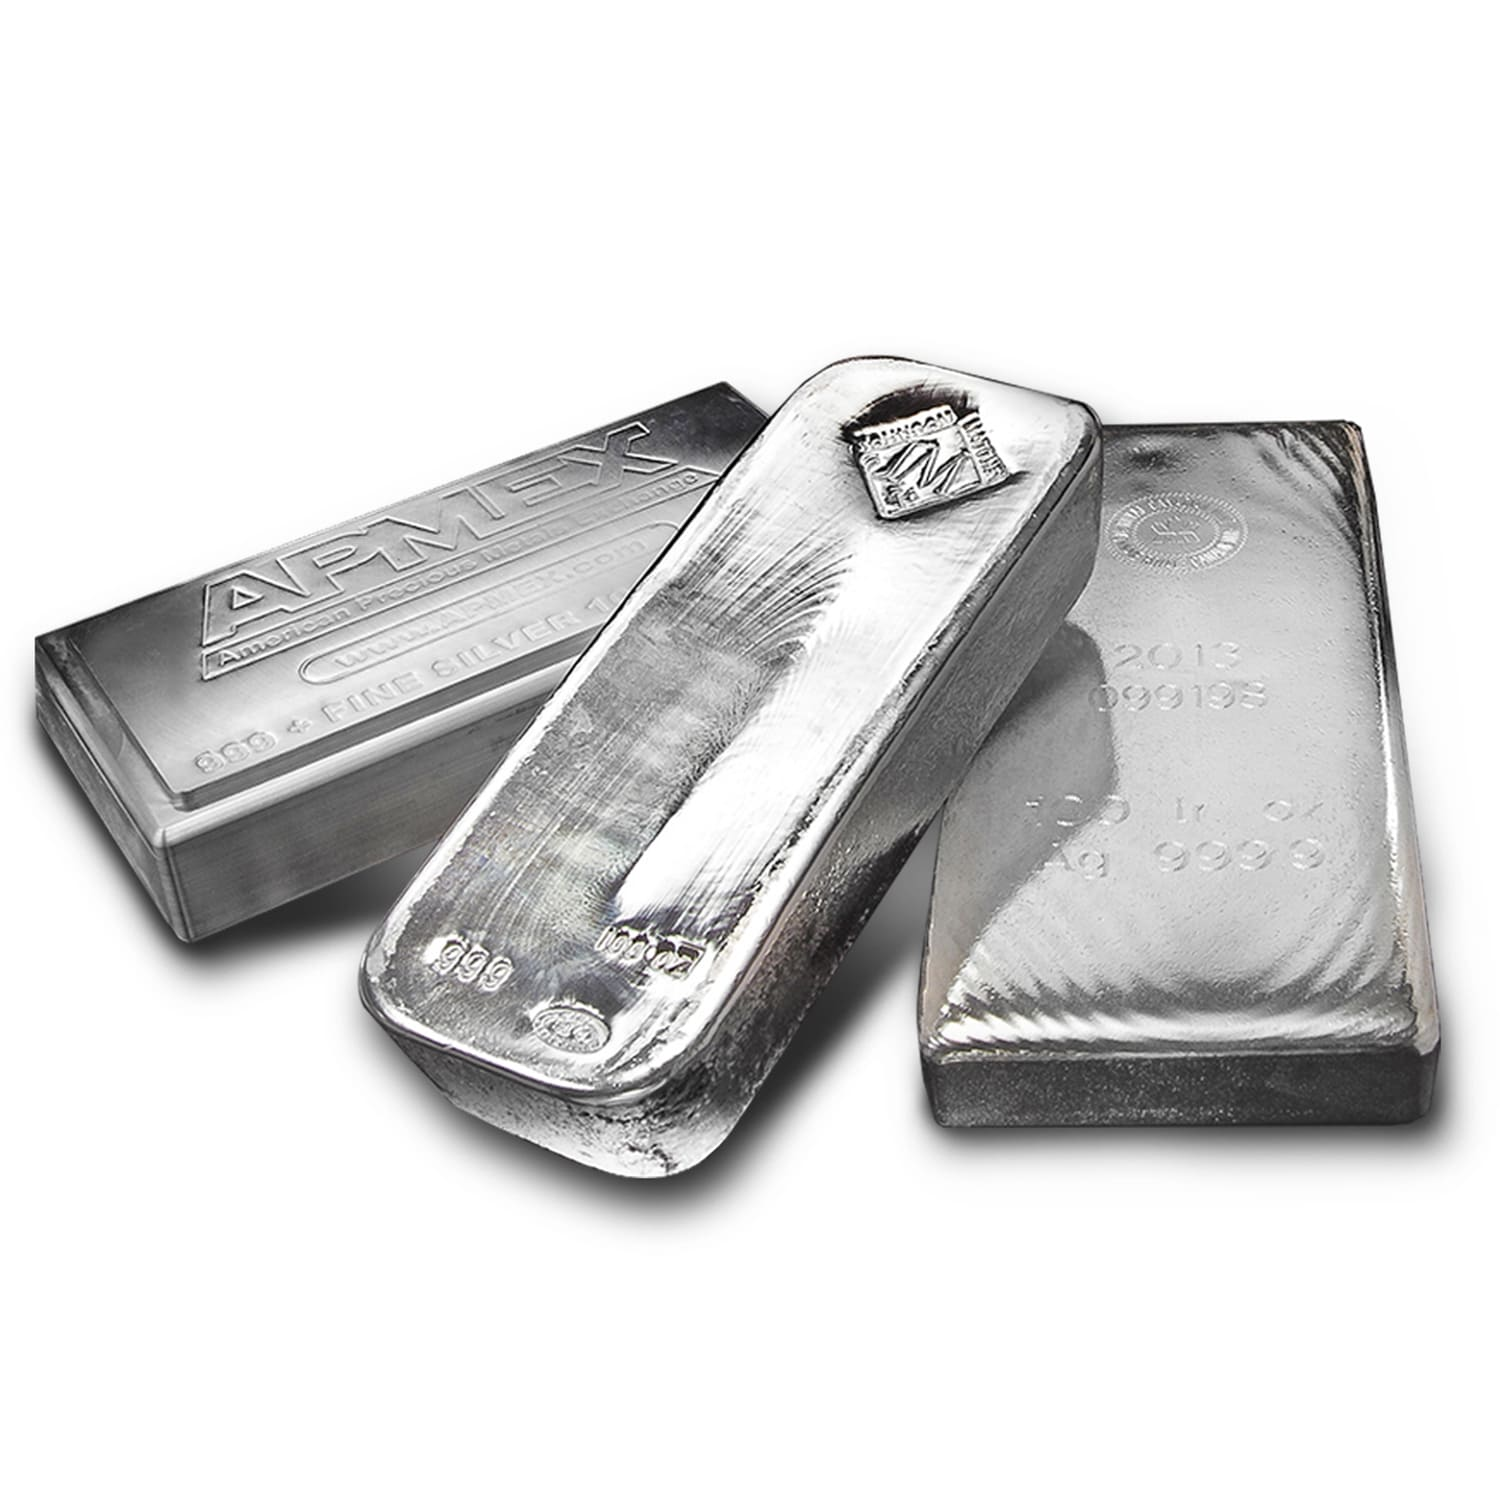 101.50 oz Silver Bars - Secondary Market